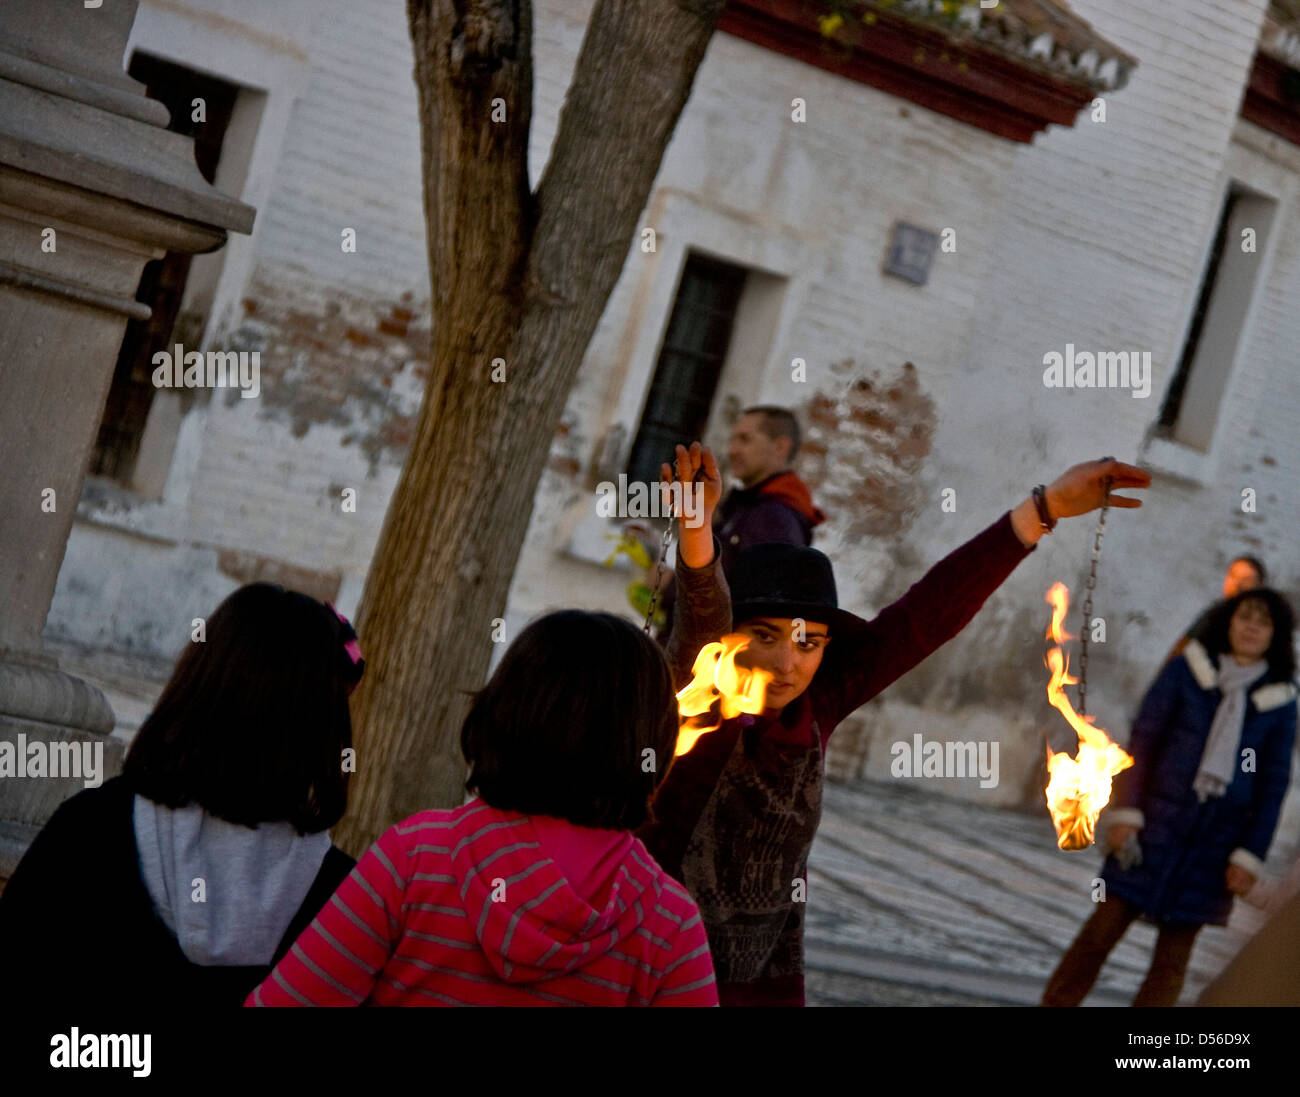 Female fire eating juggler entertainer performing at dusk in Mirador San Nicolas Granada Andalusia Spain Europe - Stock Image